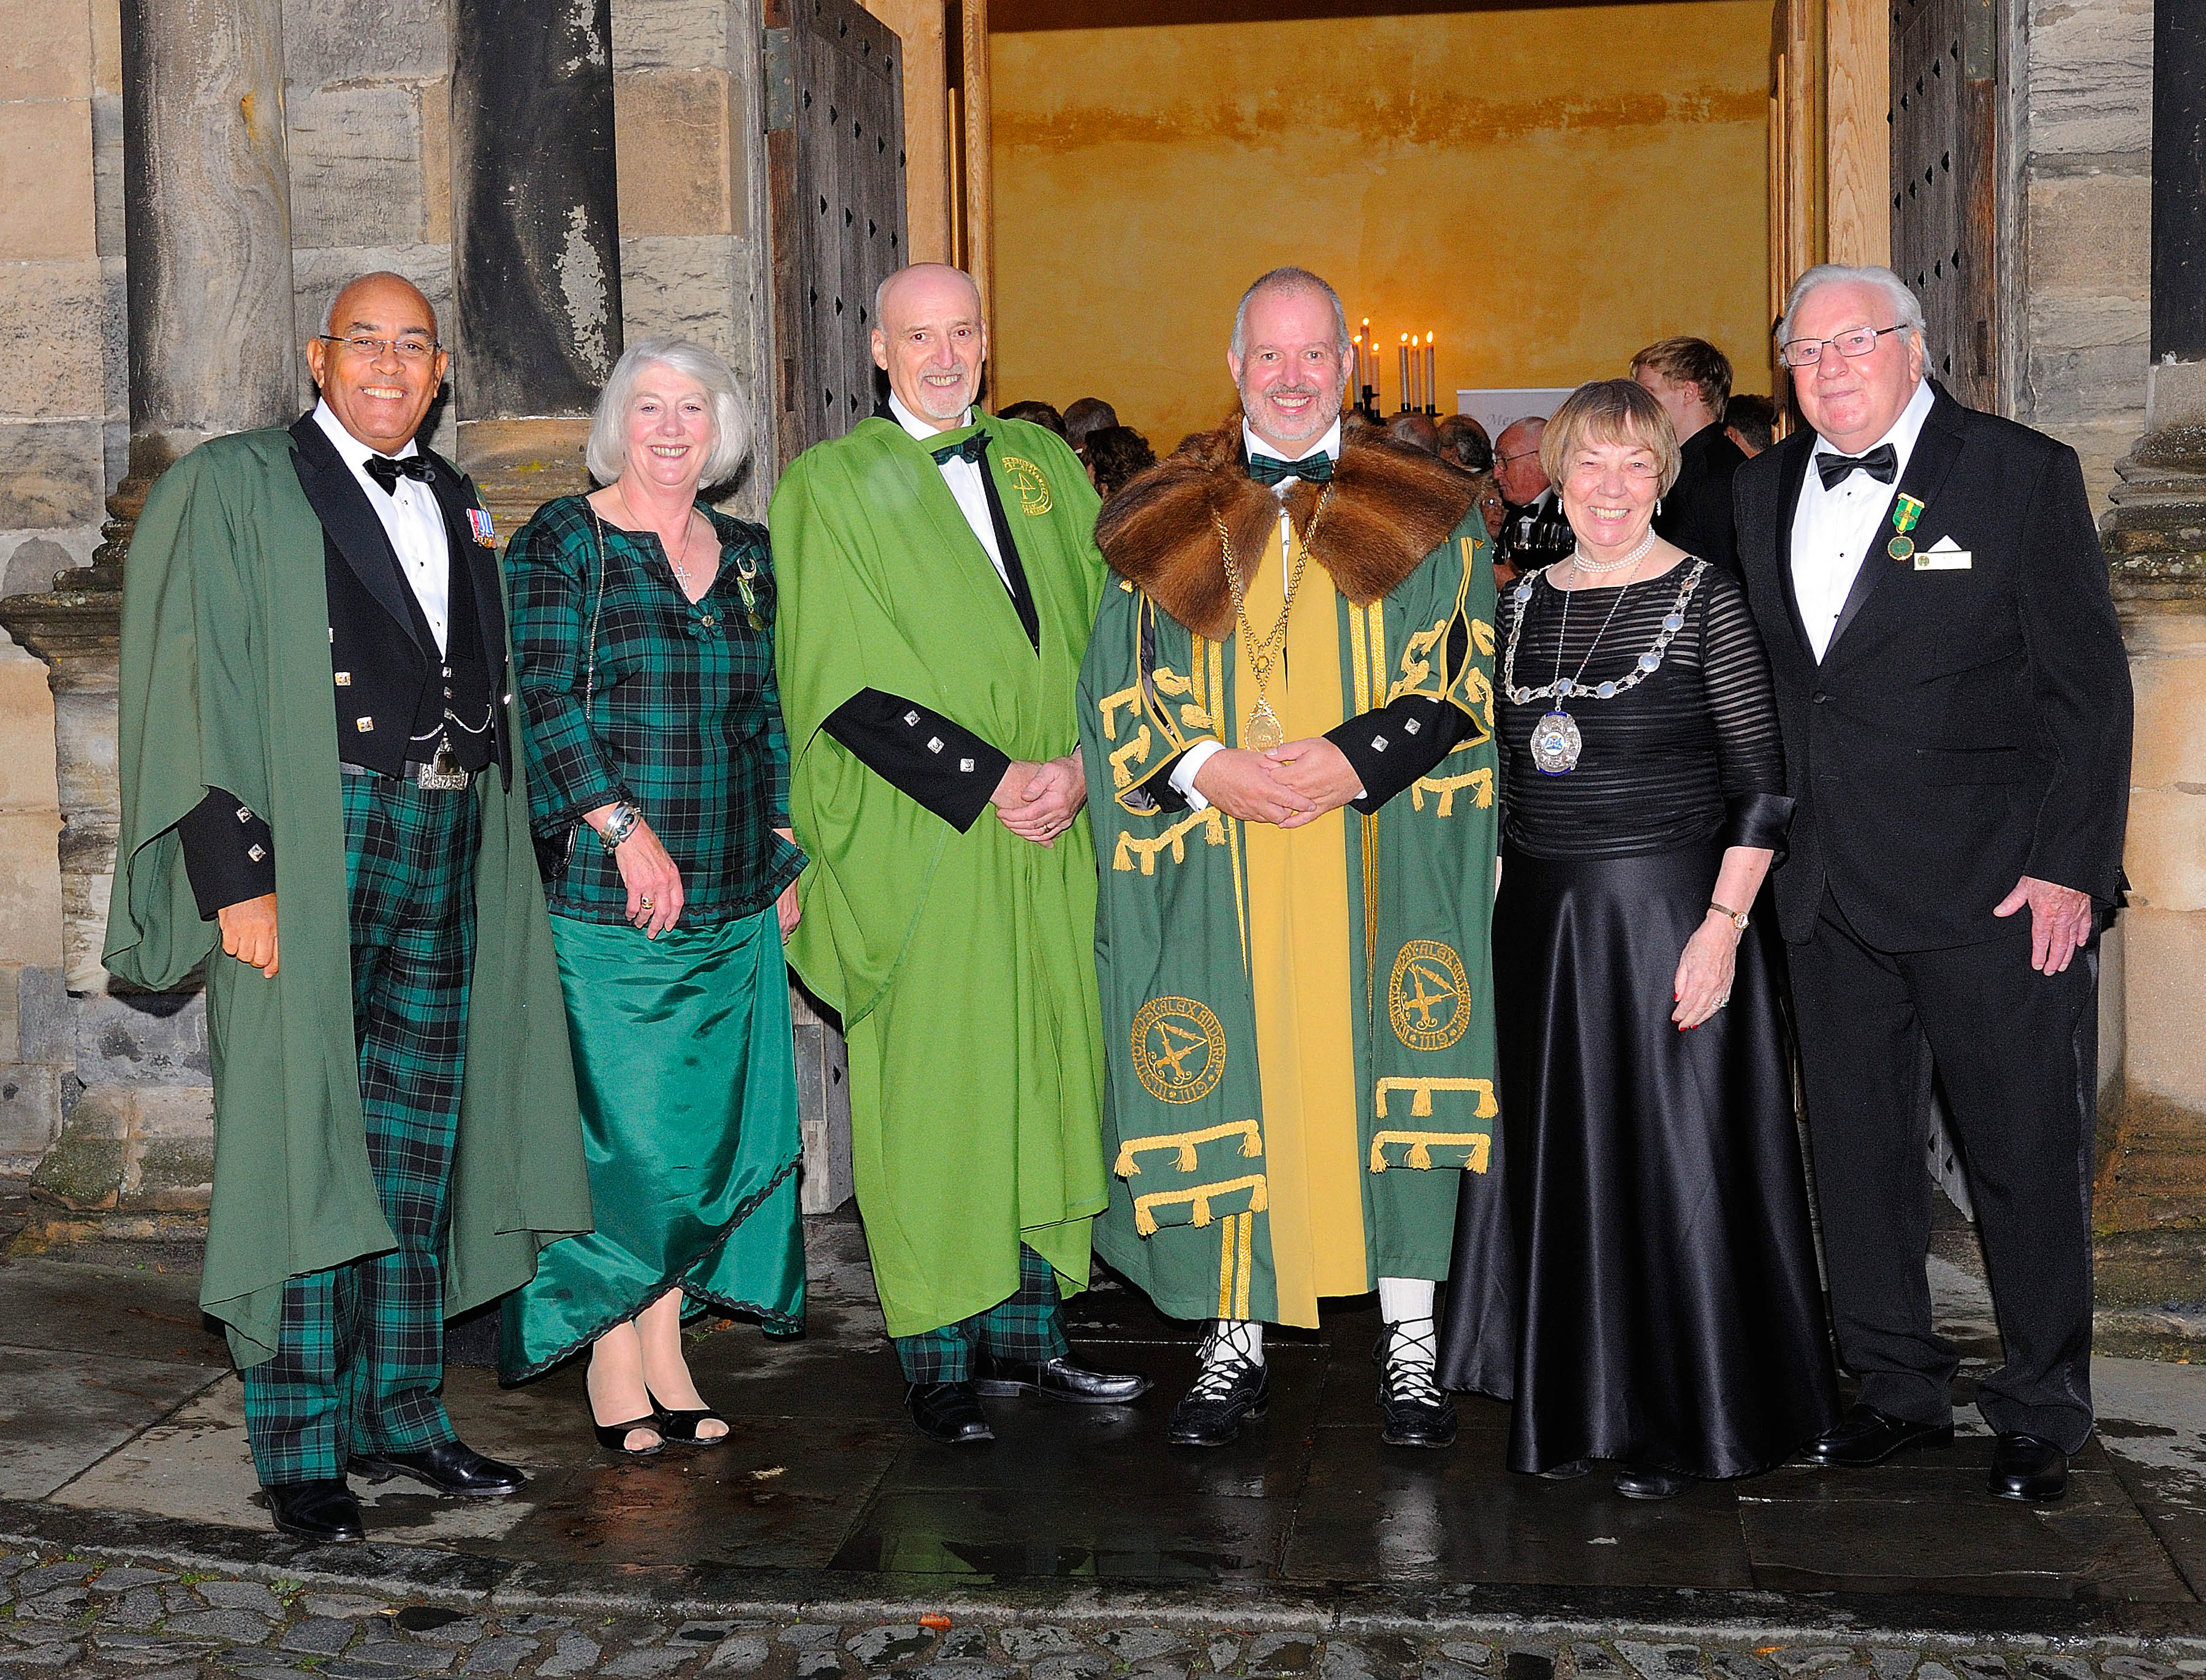 The Guildry's 900th anniversary celebrations at Stirling Castle